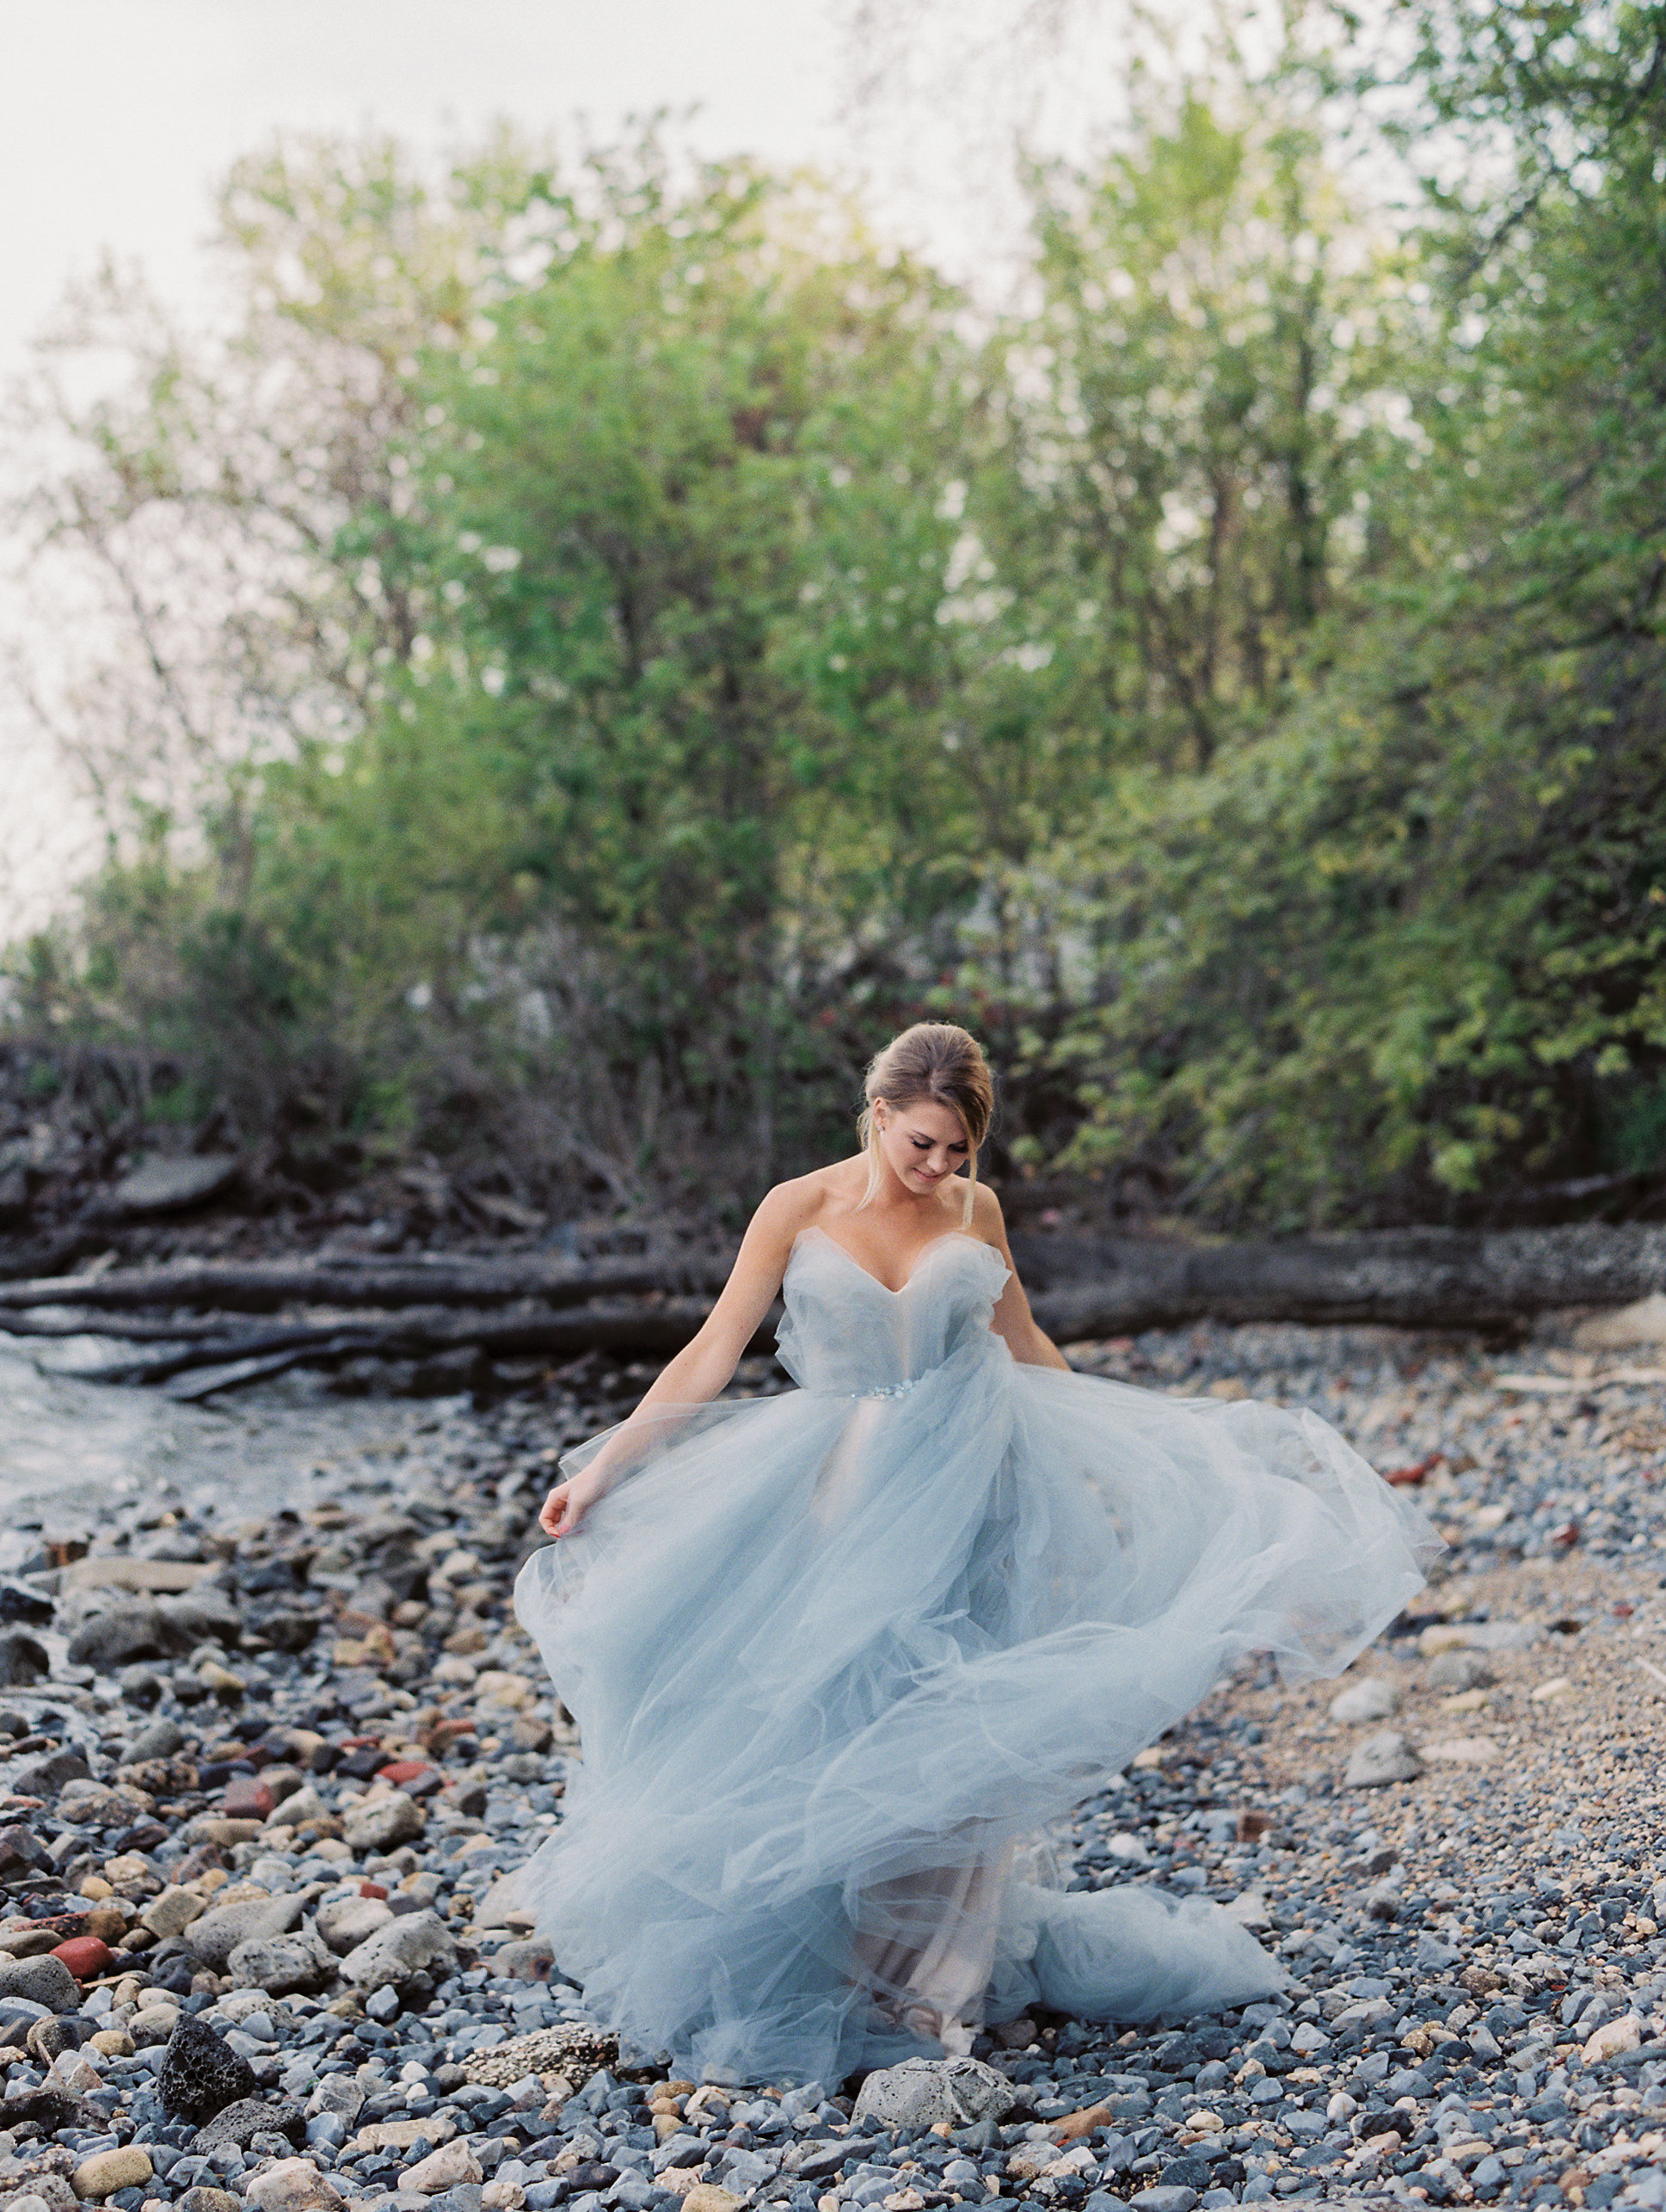 Image by   CJK Visuals  . The magic of tulle on film.